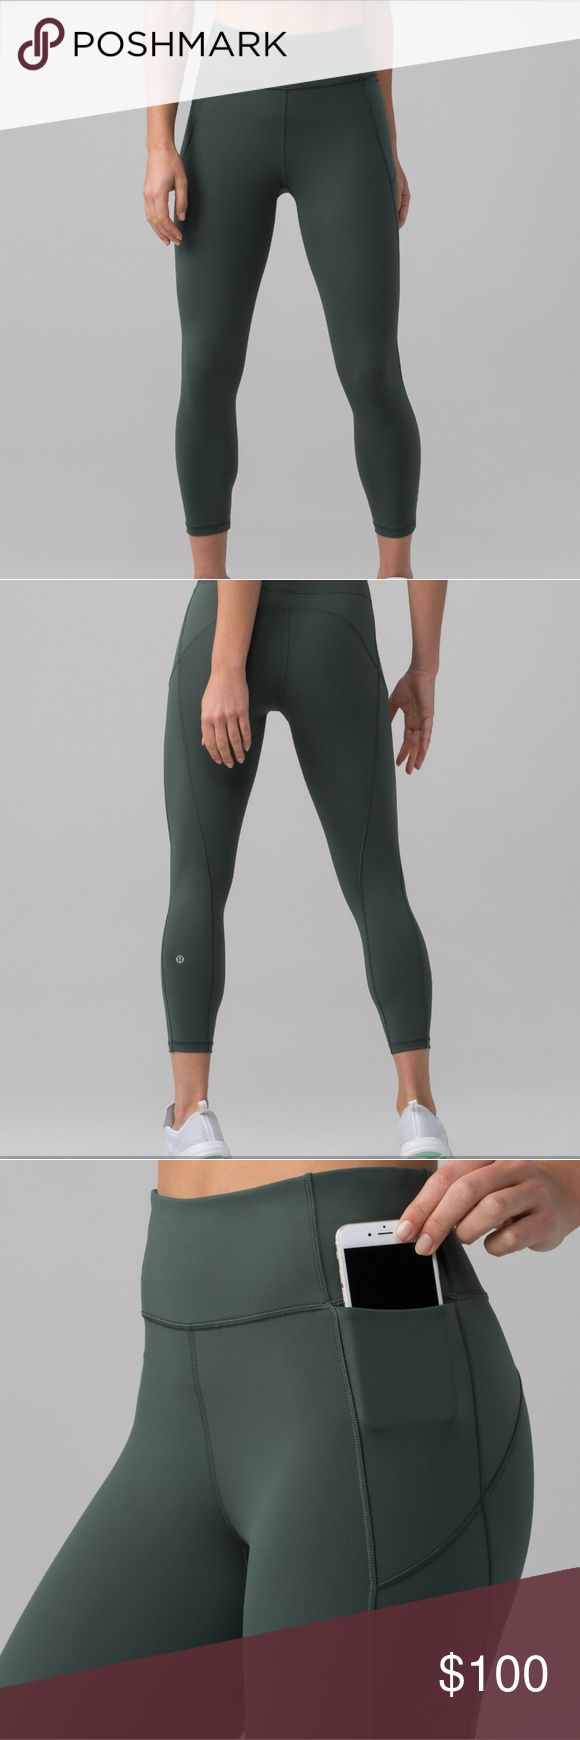 Lululemon final lap crop nwt size 10 Dark forest colored leggings in the nulux naked skin fabric. So comfy! lululemon athletica Pants